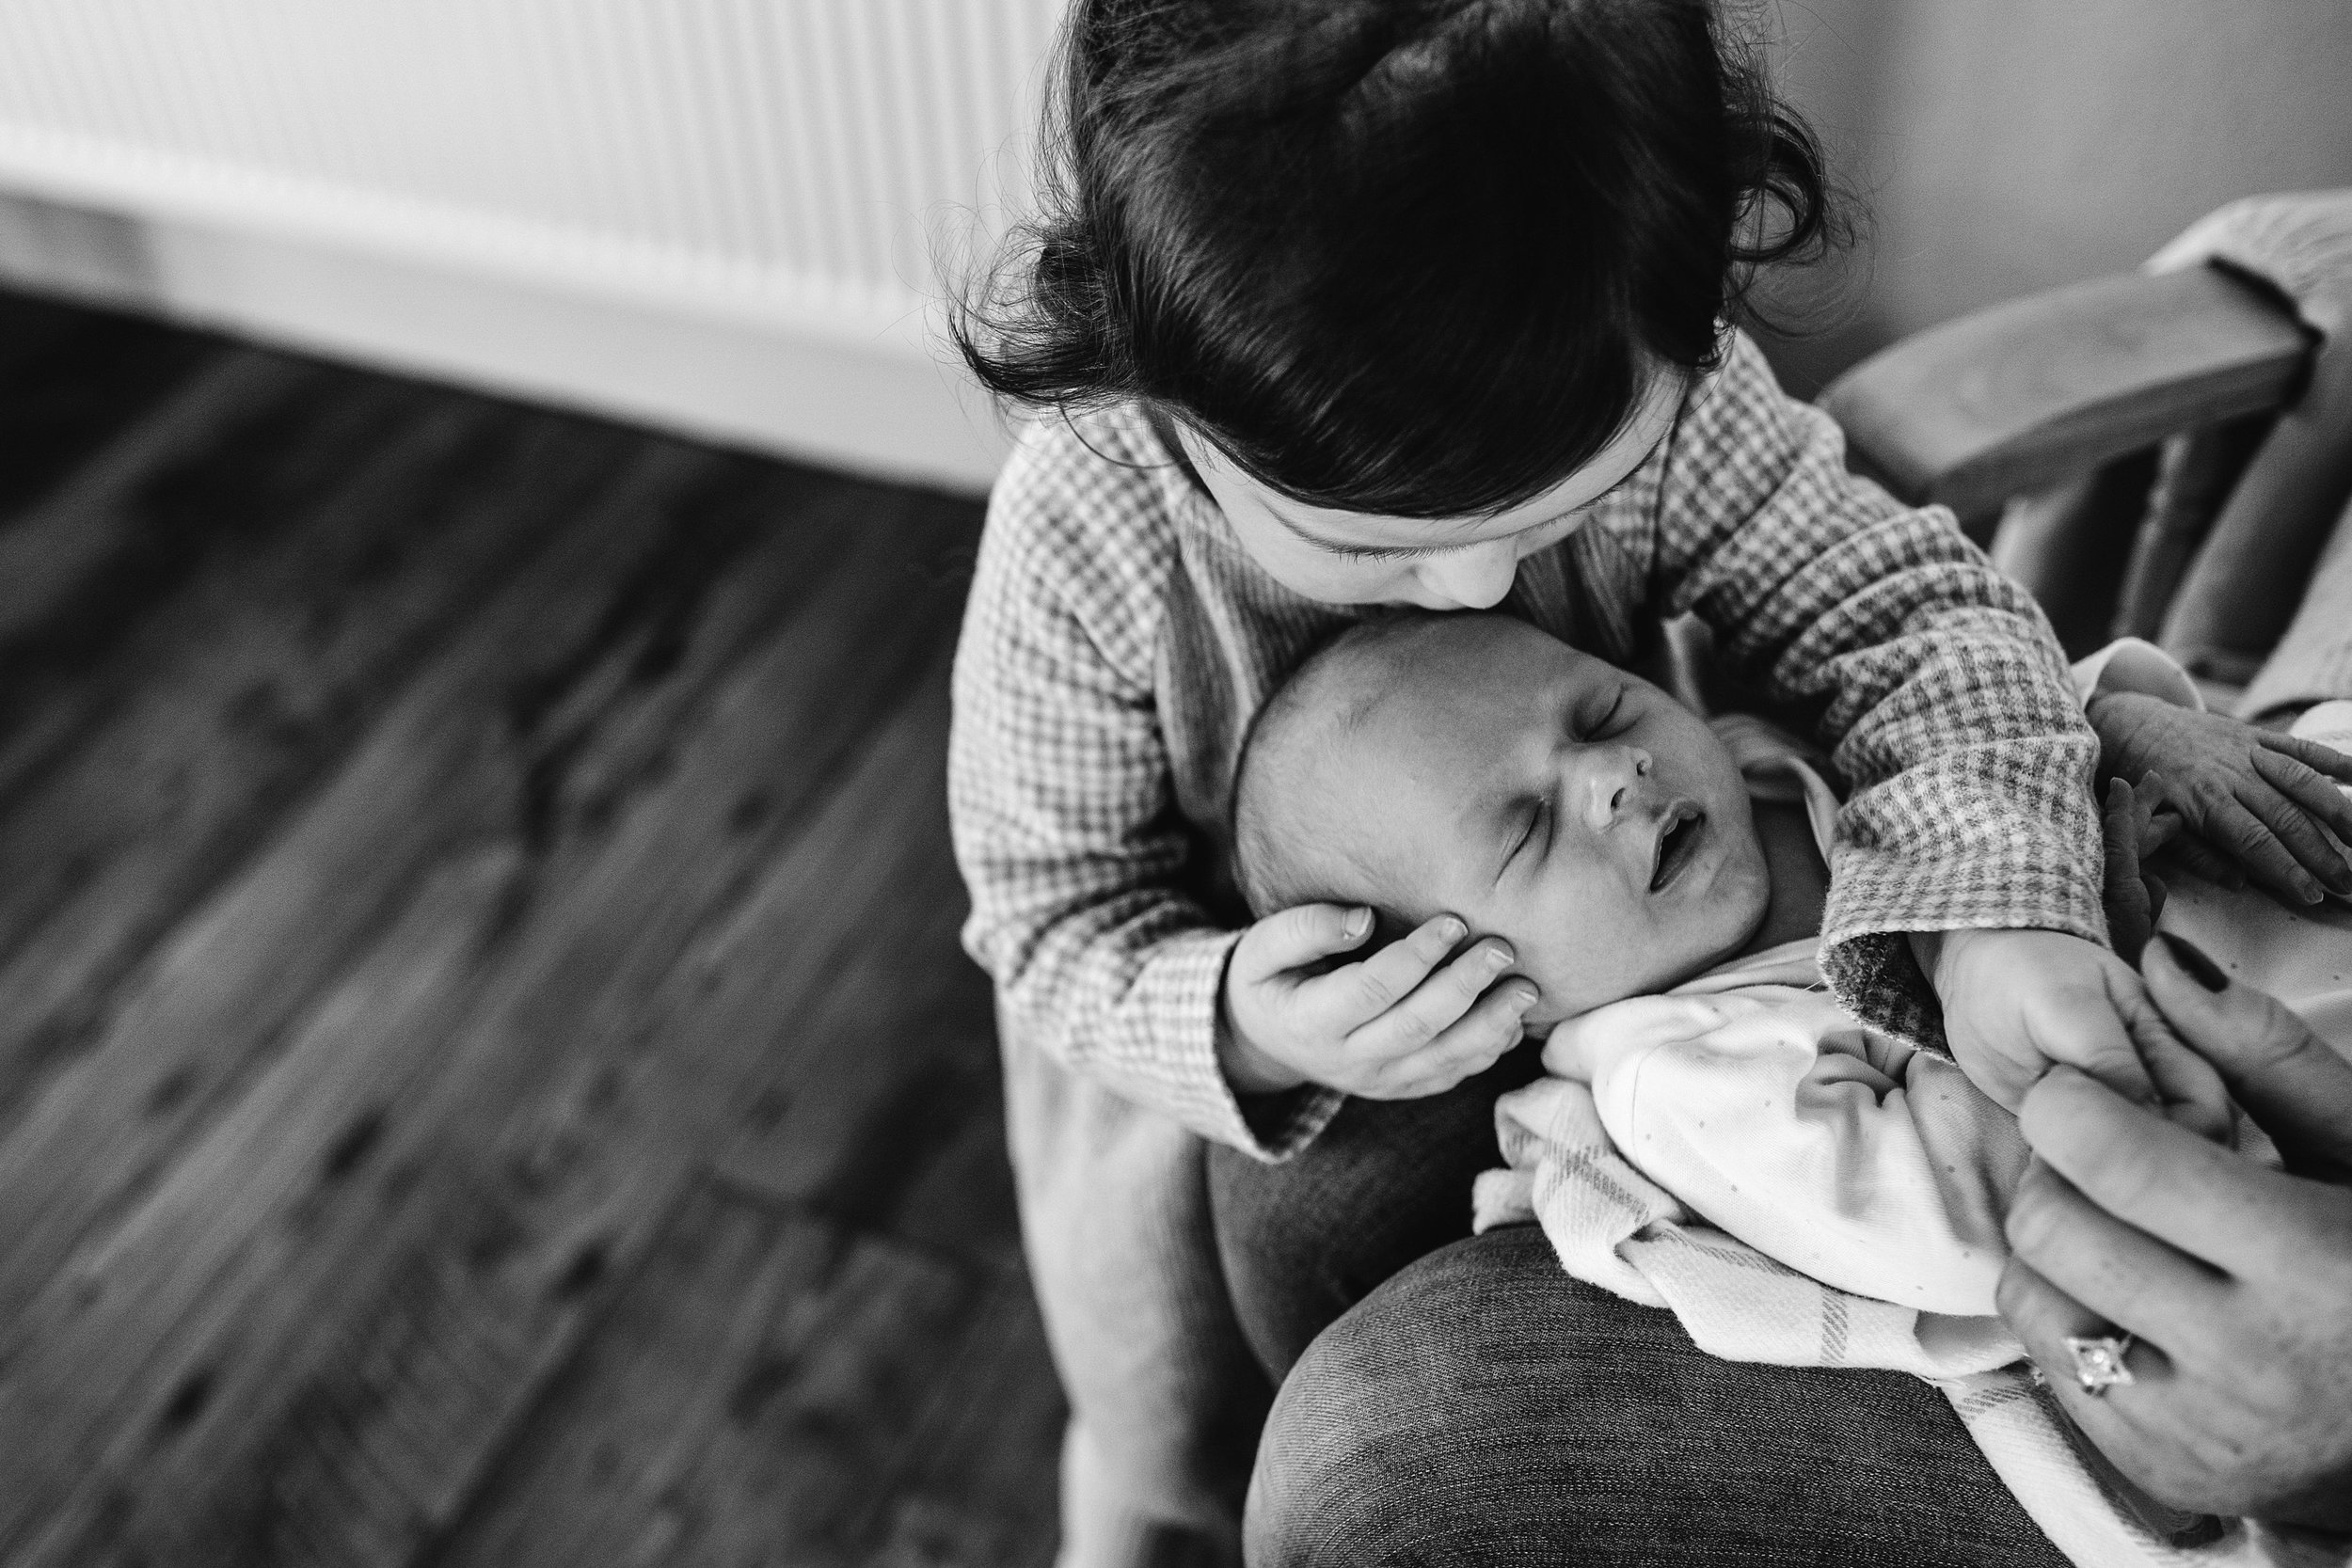 Big sister kissing her baby brother on the head at home